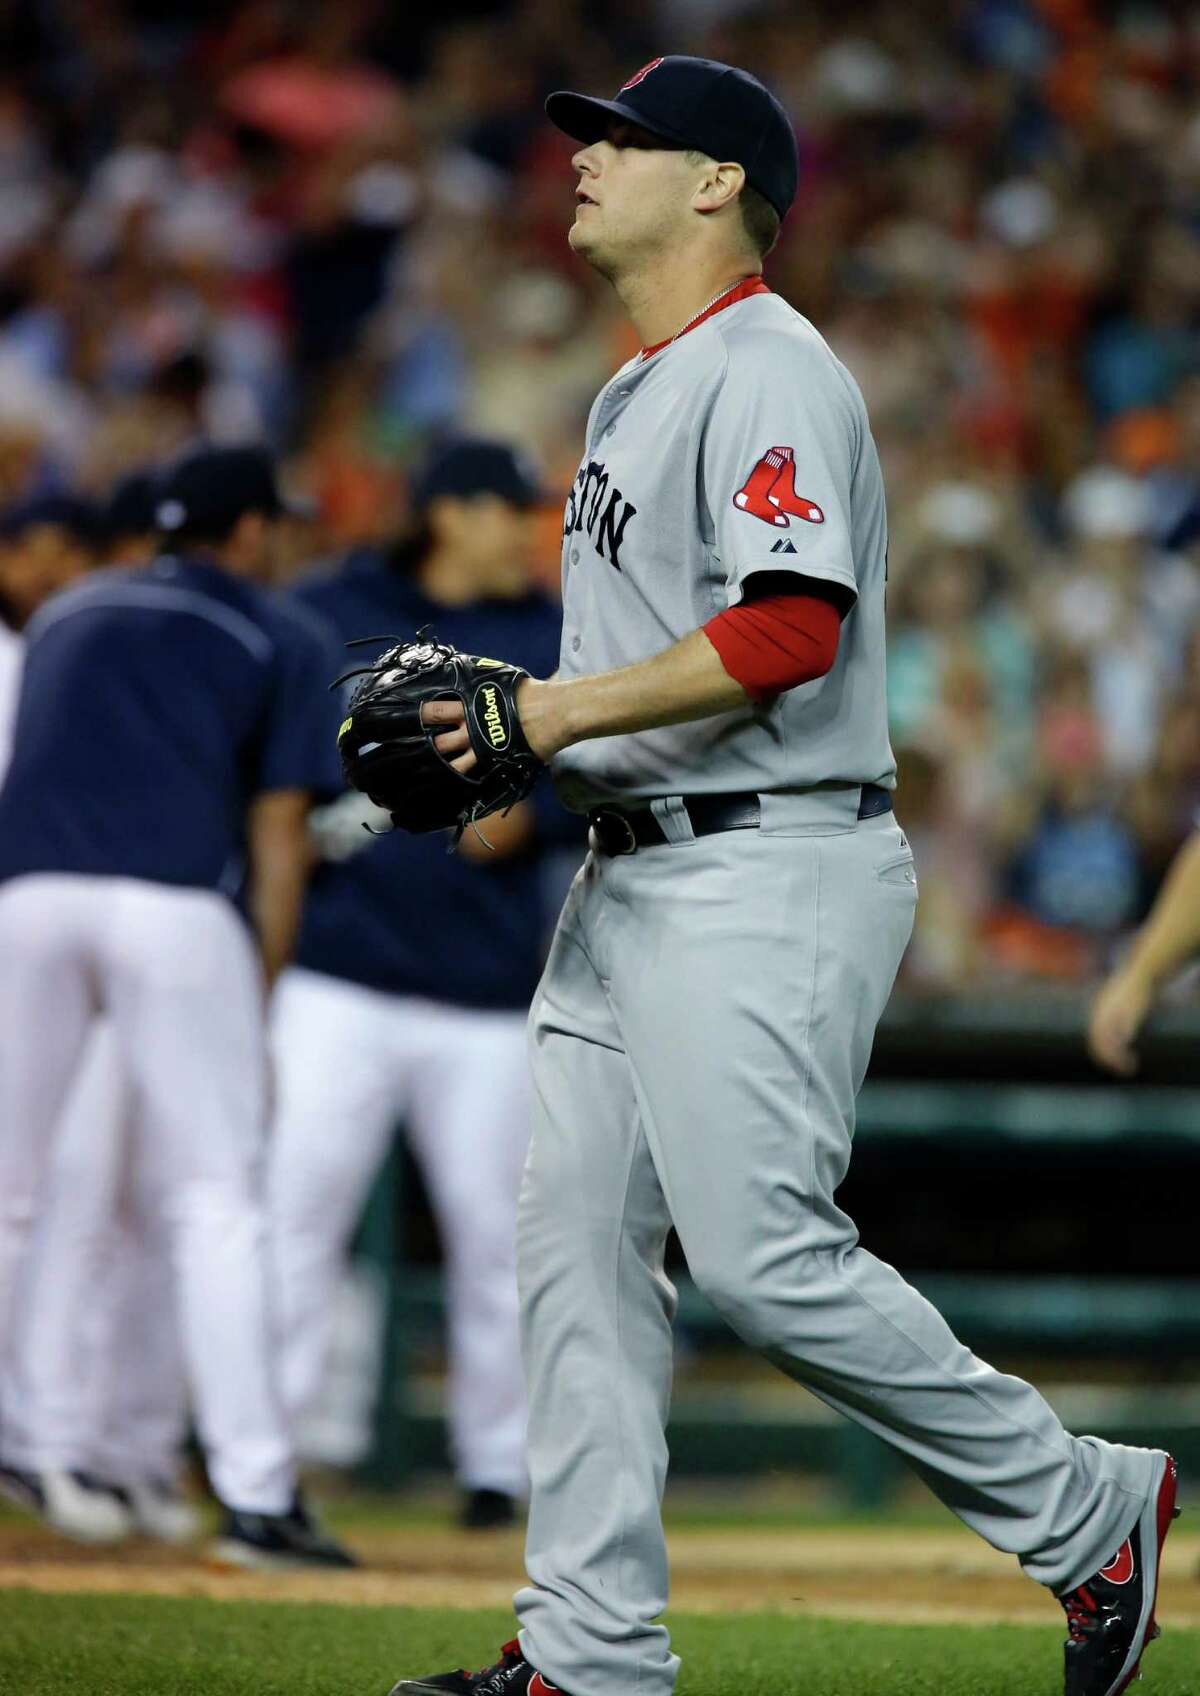 DETROIT, MI - JUNE 20: Closer Andrew Bailey #40 of the Boston Red Sox walks off the field after giving up a two-run home run to Jhonny Peralta of the Detroit Tigers in the ninth inning to give the Tigers a 4-3 win at Comerica Park on June 20, 2013 in Detroit, Michigan. (Photo by Duane Burleson/Getty Images)